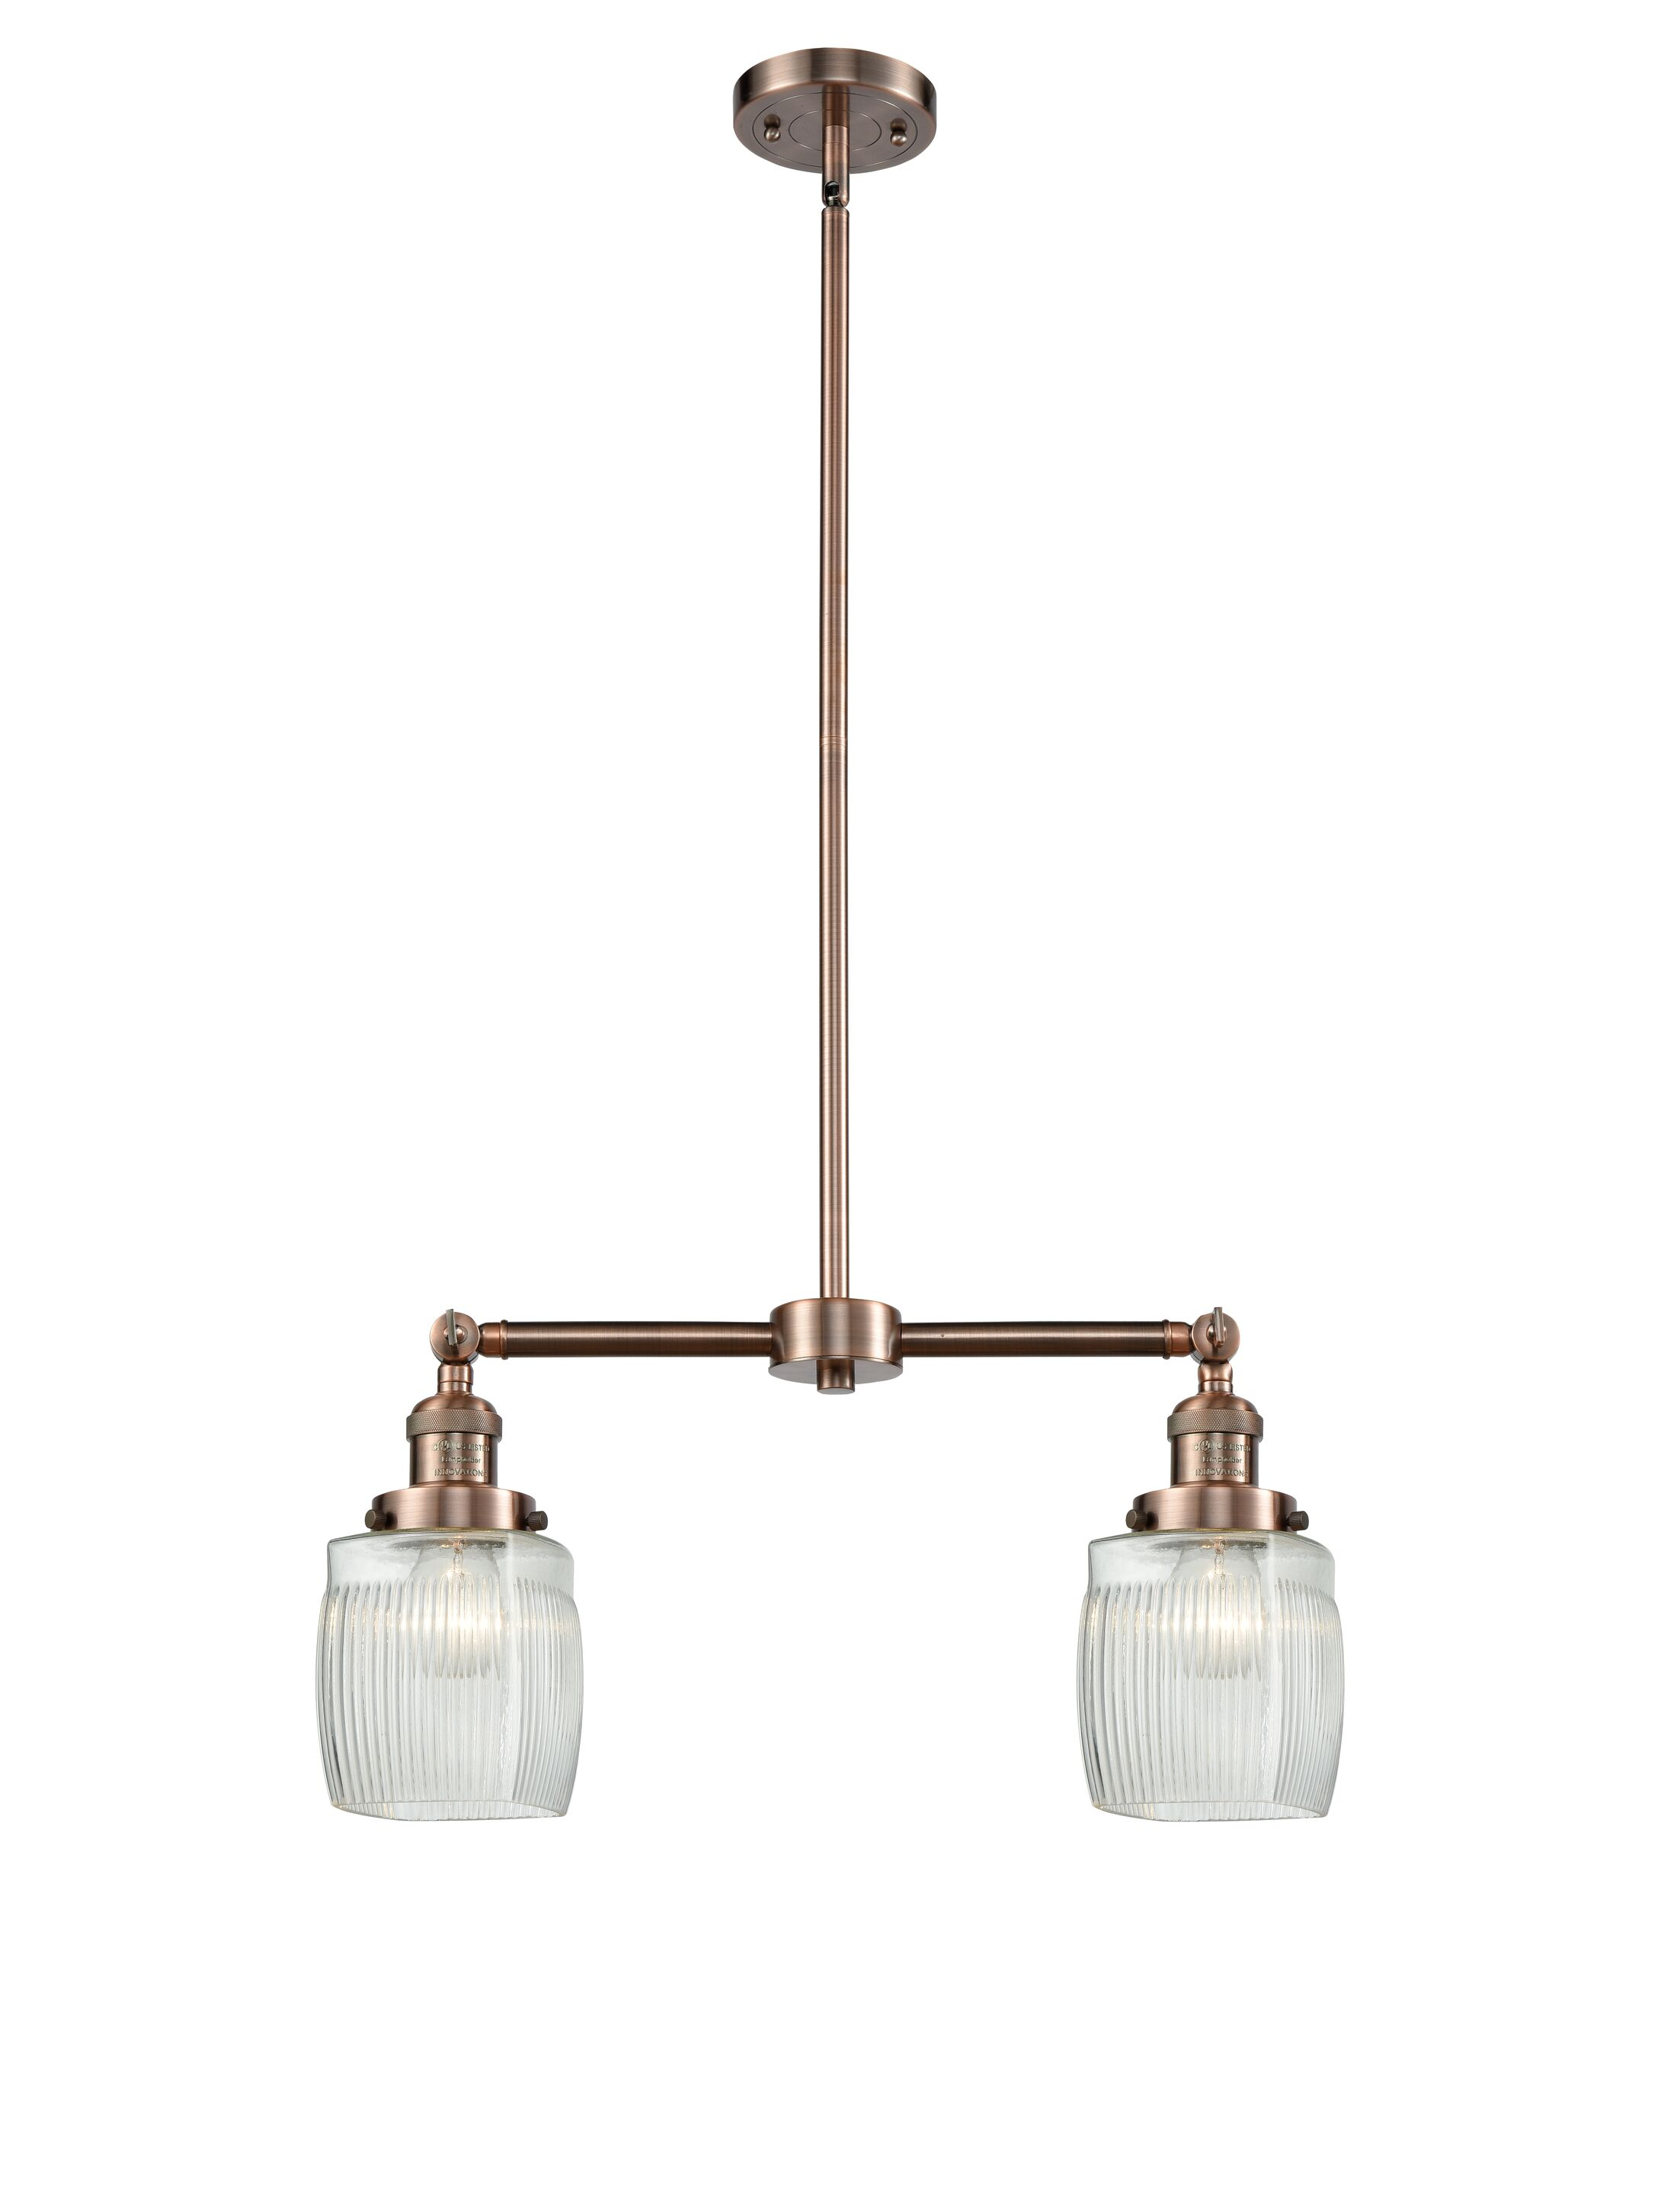 Mireya 2-Light Kitchen Island Pendant Bulb Type: LED, Finish: Antique Copper